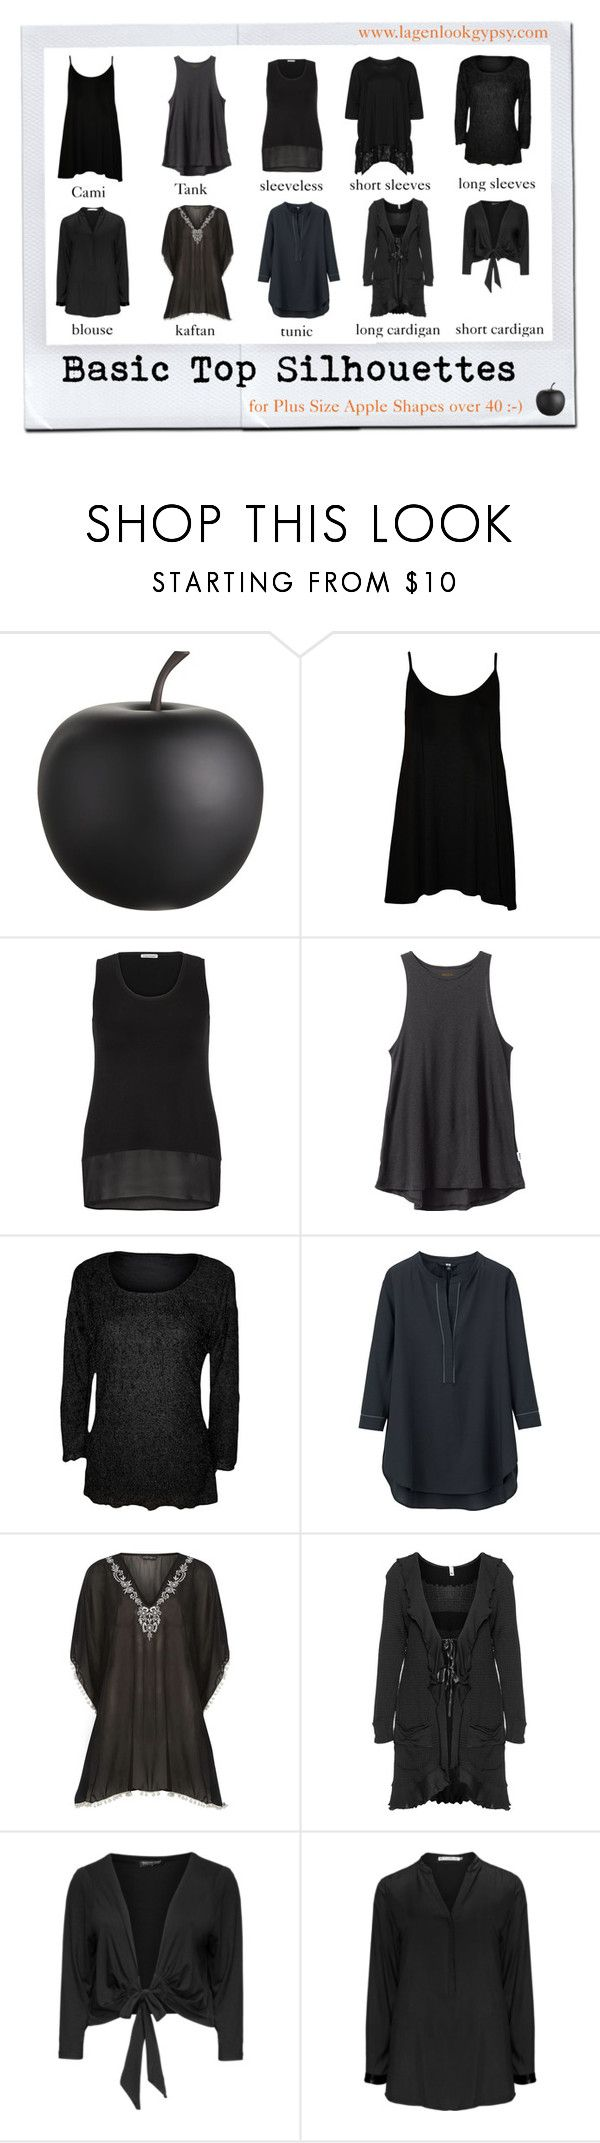 """""""Basic Top Silhouettes for Plus Sizes over 40"""" by mindeja ❤ liked on Polyvore featuring CB2, WearAll, maurices, RVCA, Uniqlo, Dorothy Perkins, Manon Baptiste, Head Over Heels, Studio and Vincenzo Allocca"""